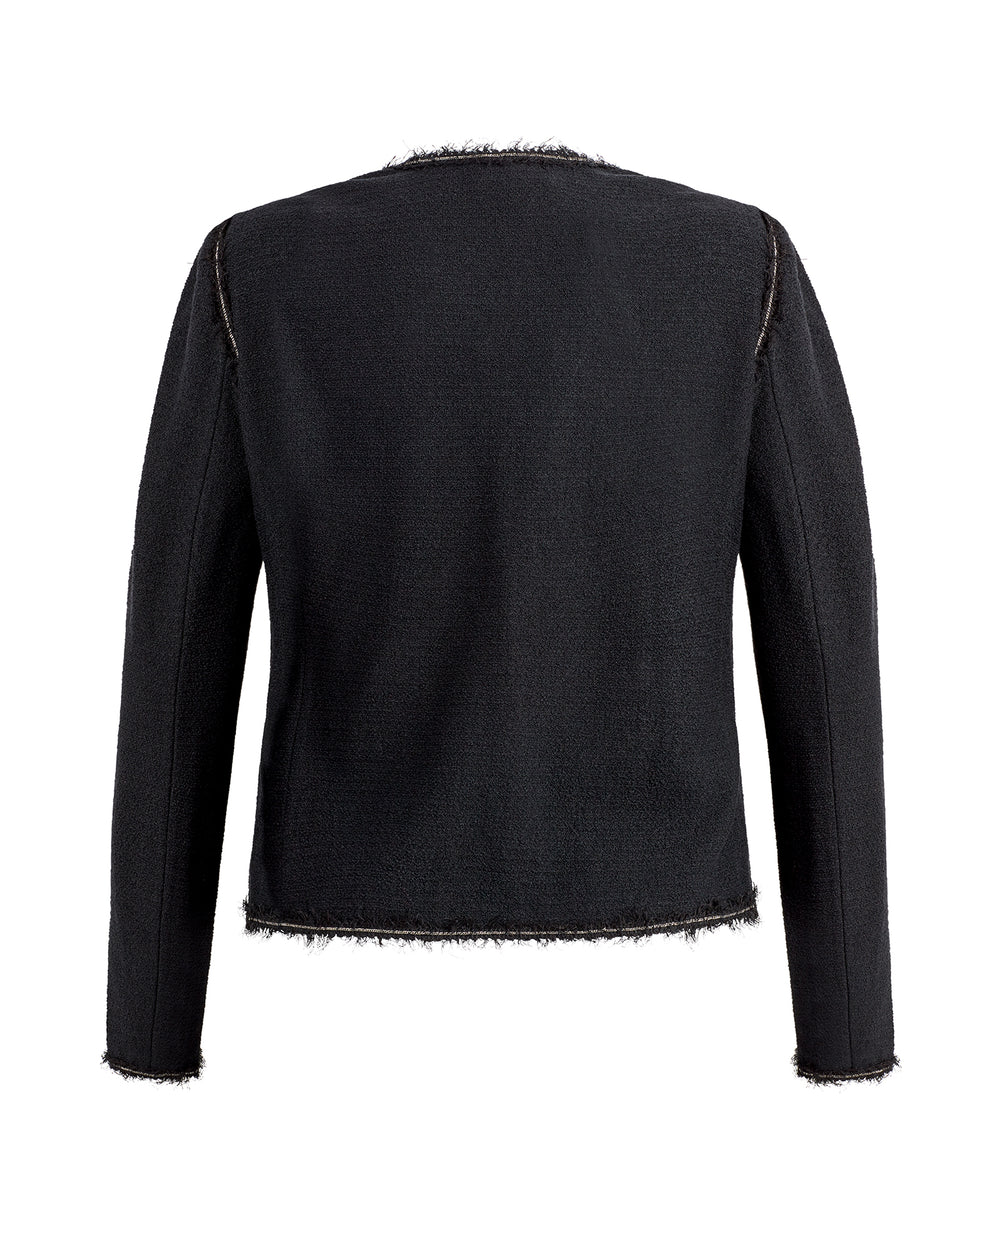 Boucle Knit Jewel Neck 3/4 Sleeve Jacket